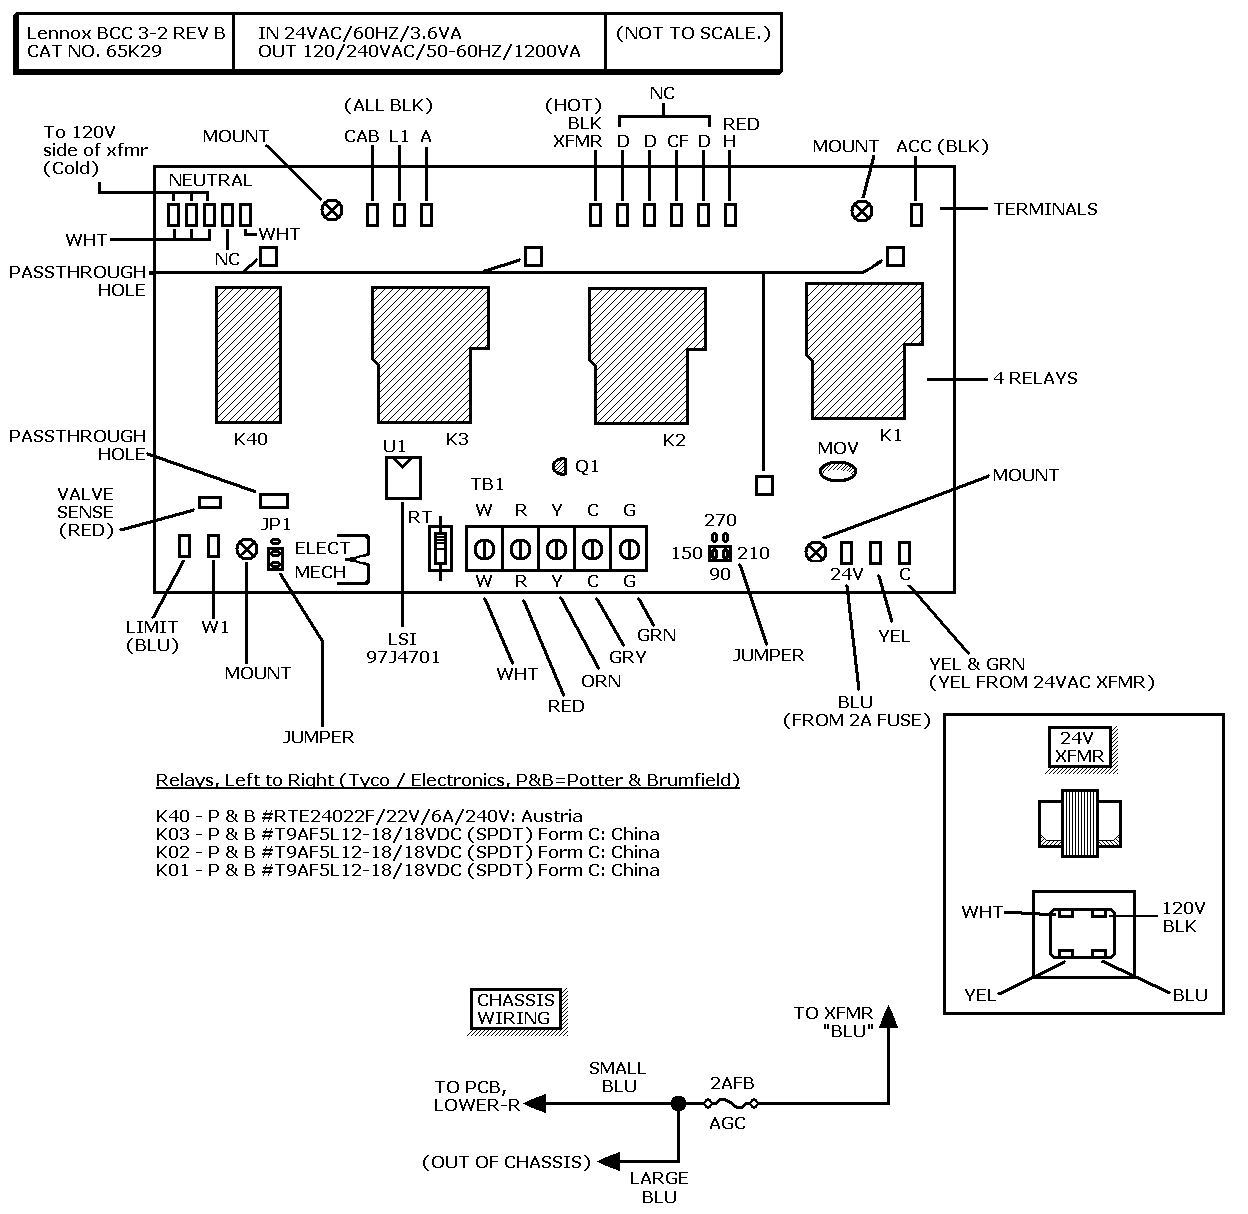 Lennox g23 wiring diagram wiring diagram g23 furnace wiring diagram wiring diagram u2022 rh championapp co electric furnace wiring diagrams mobile home furnace wiring diagram swarovskicordoba